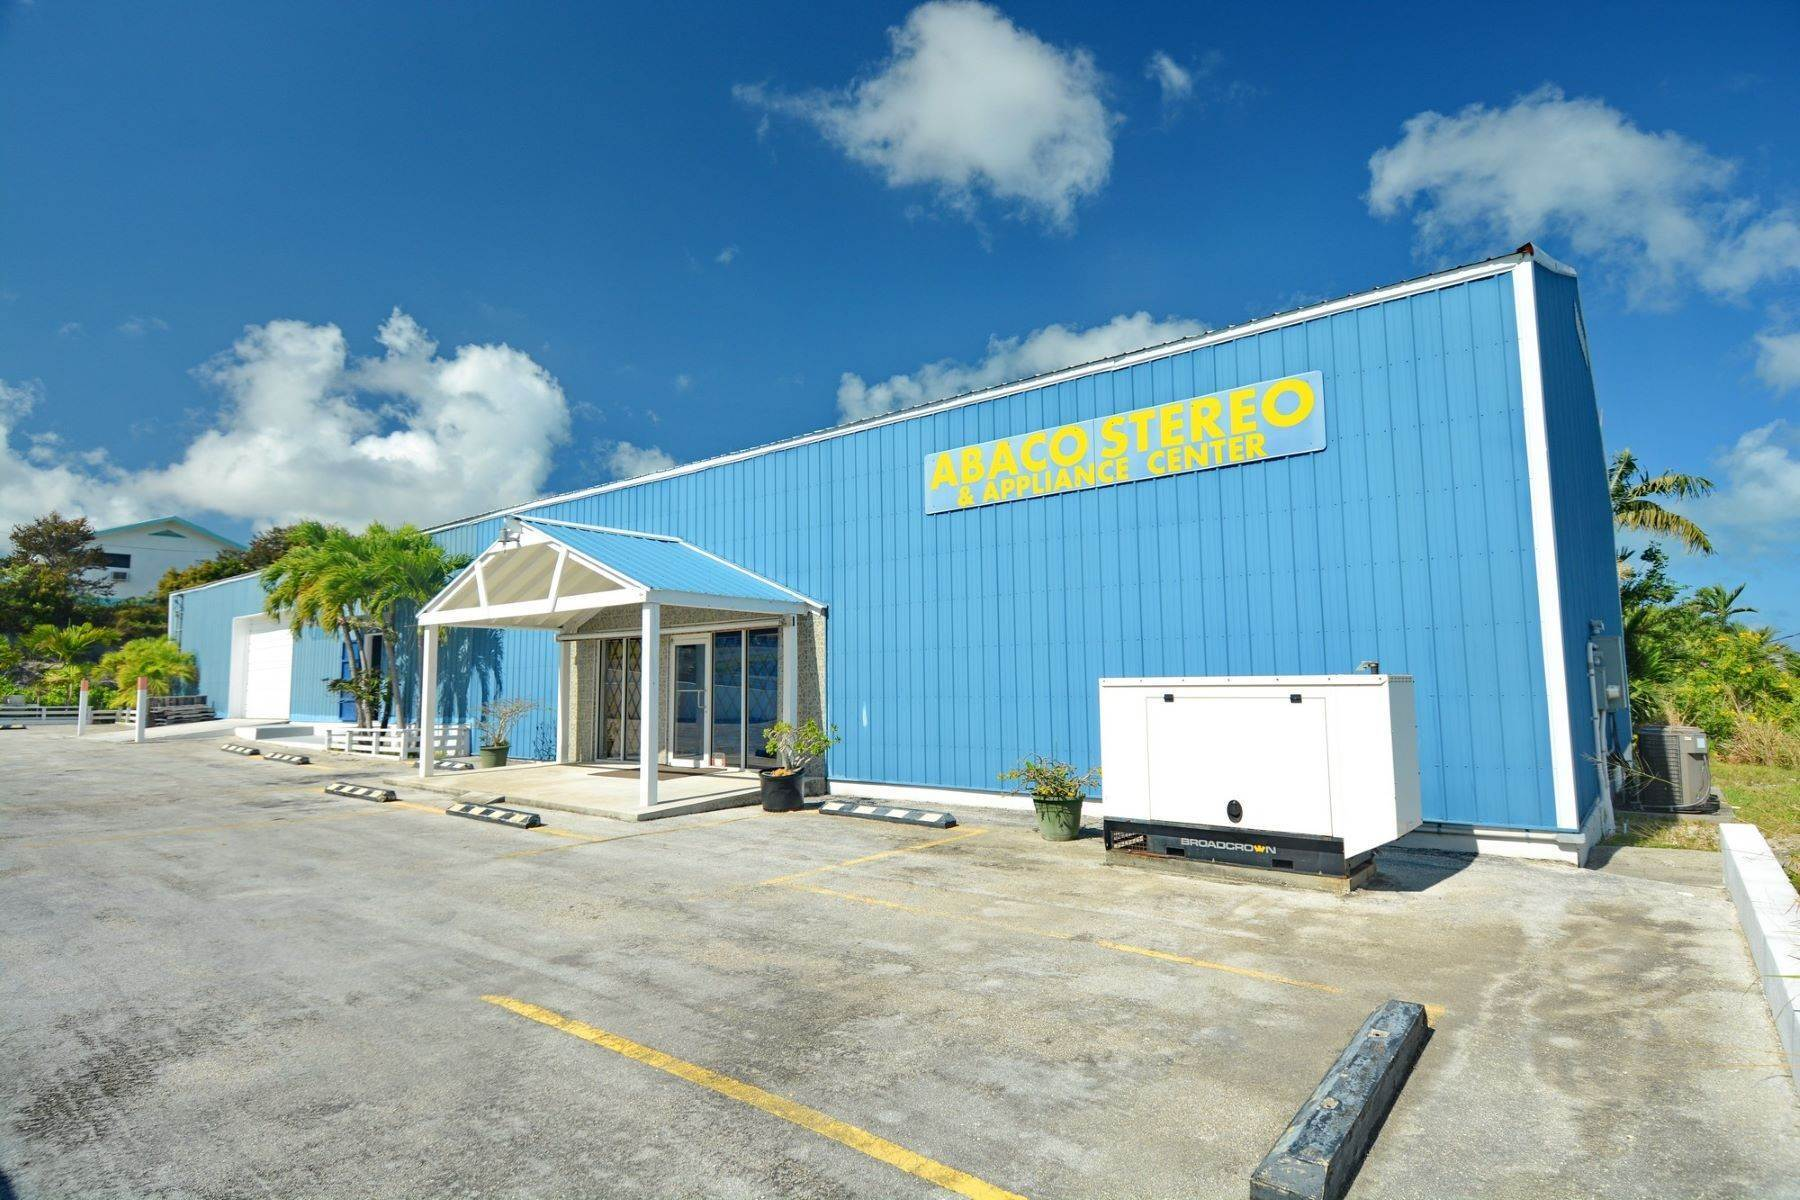 Property for Sale at Marsh Harbour, Abaco Bahamas